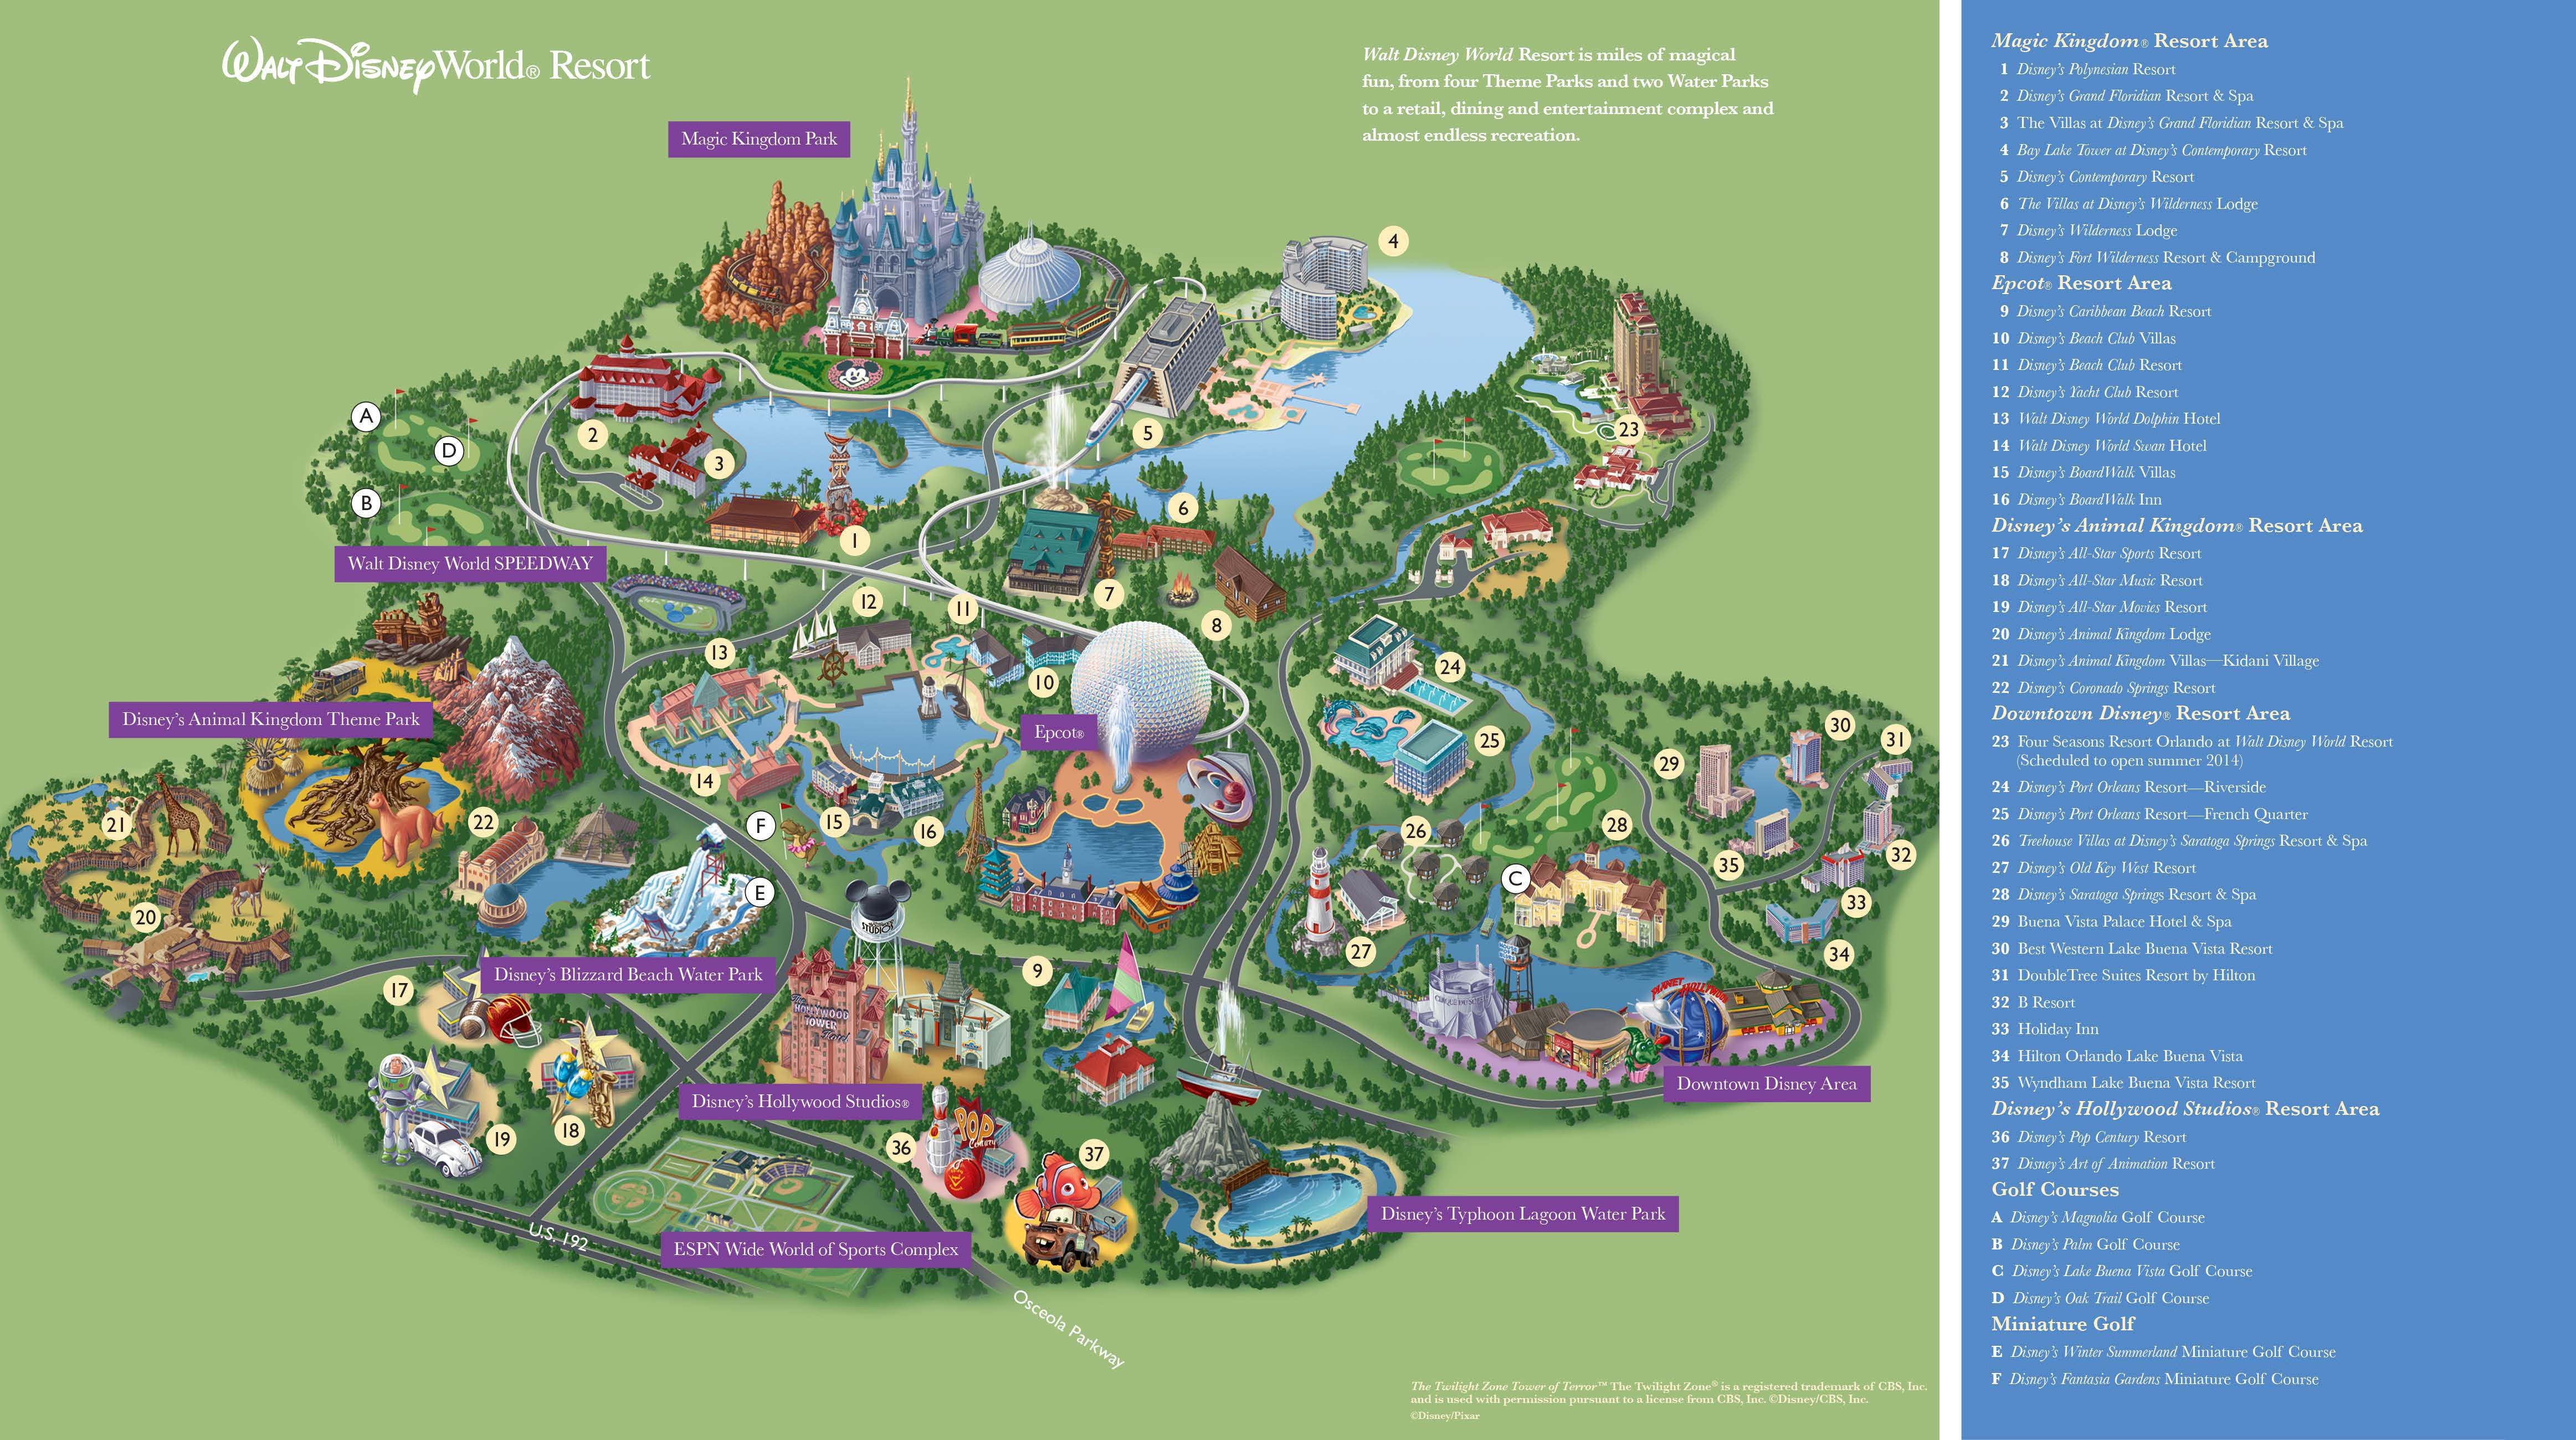 Walt Disney World Maps - Parks And Resorts In 2019 | Travel - Theme - Florida Map Hotels